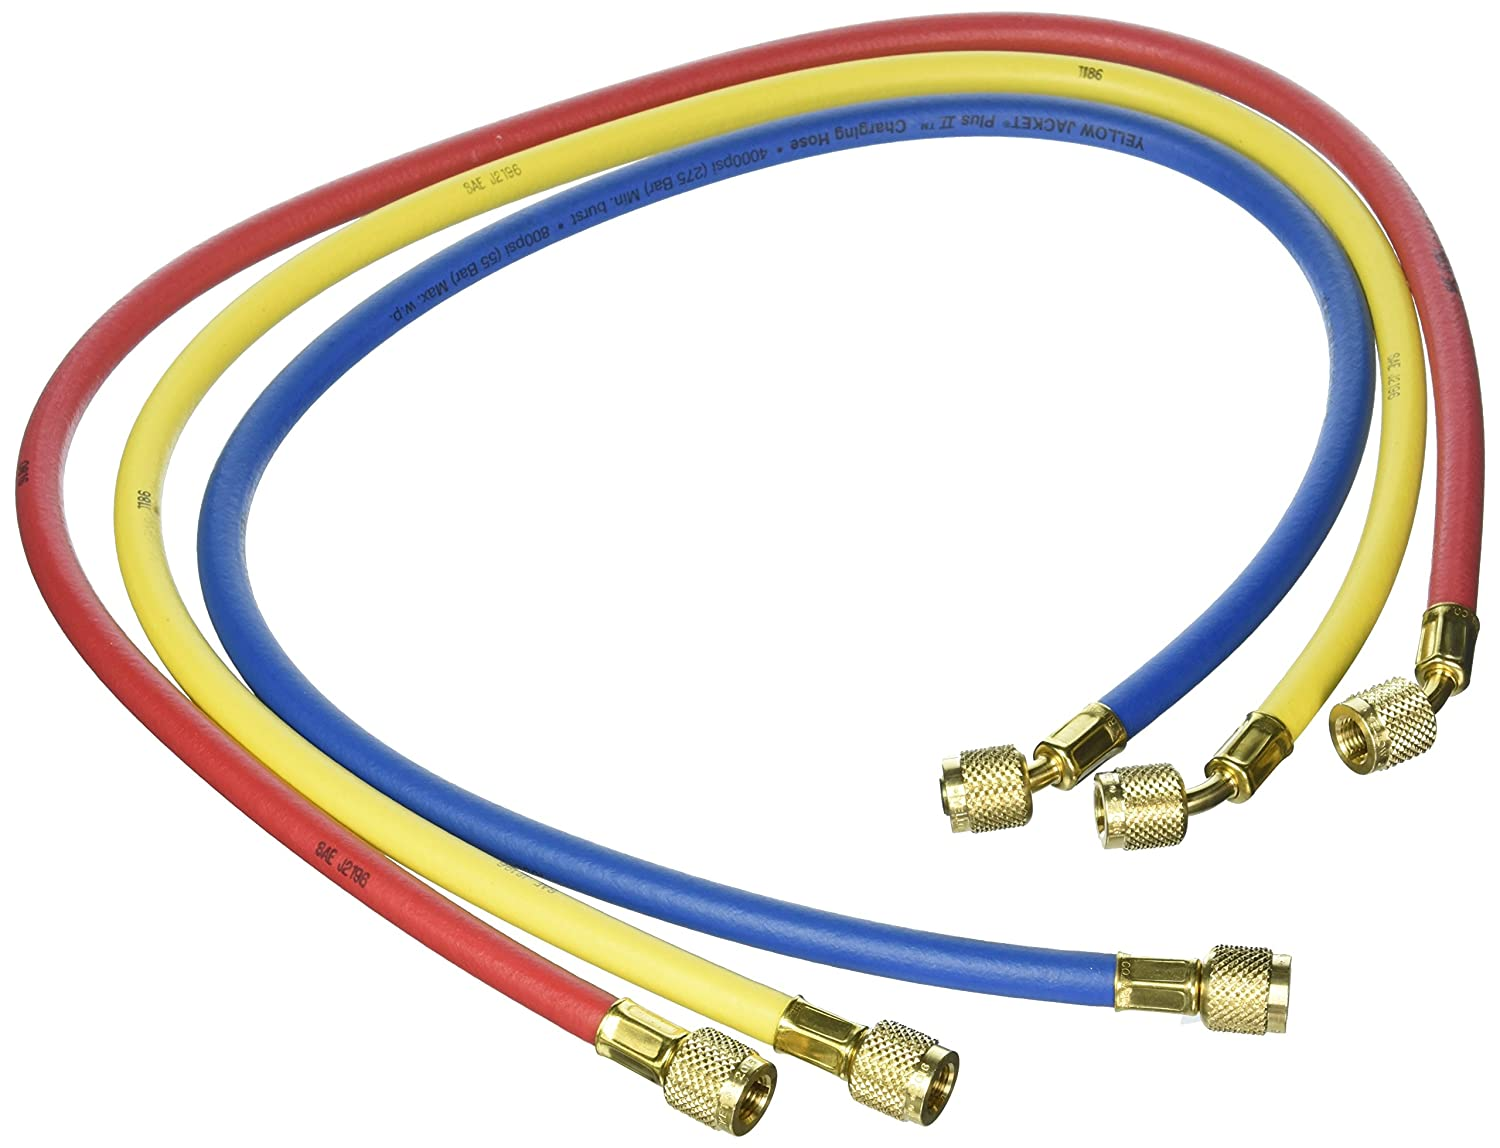 """Yellow Jacket 21983 Plus II Hose Standard 1/4"""" Flare Fittings, 36"""", Red/Yellow/Blue (Pack of 3): Industrial Hvac Components: Industrial & Scientific"""